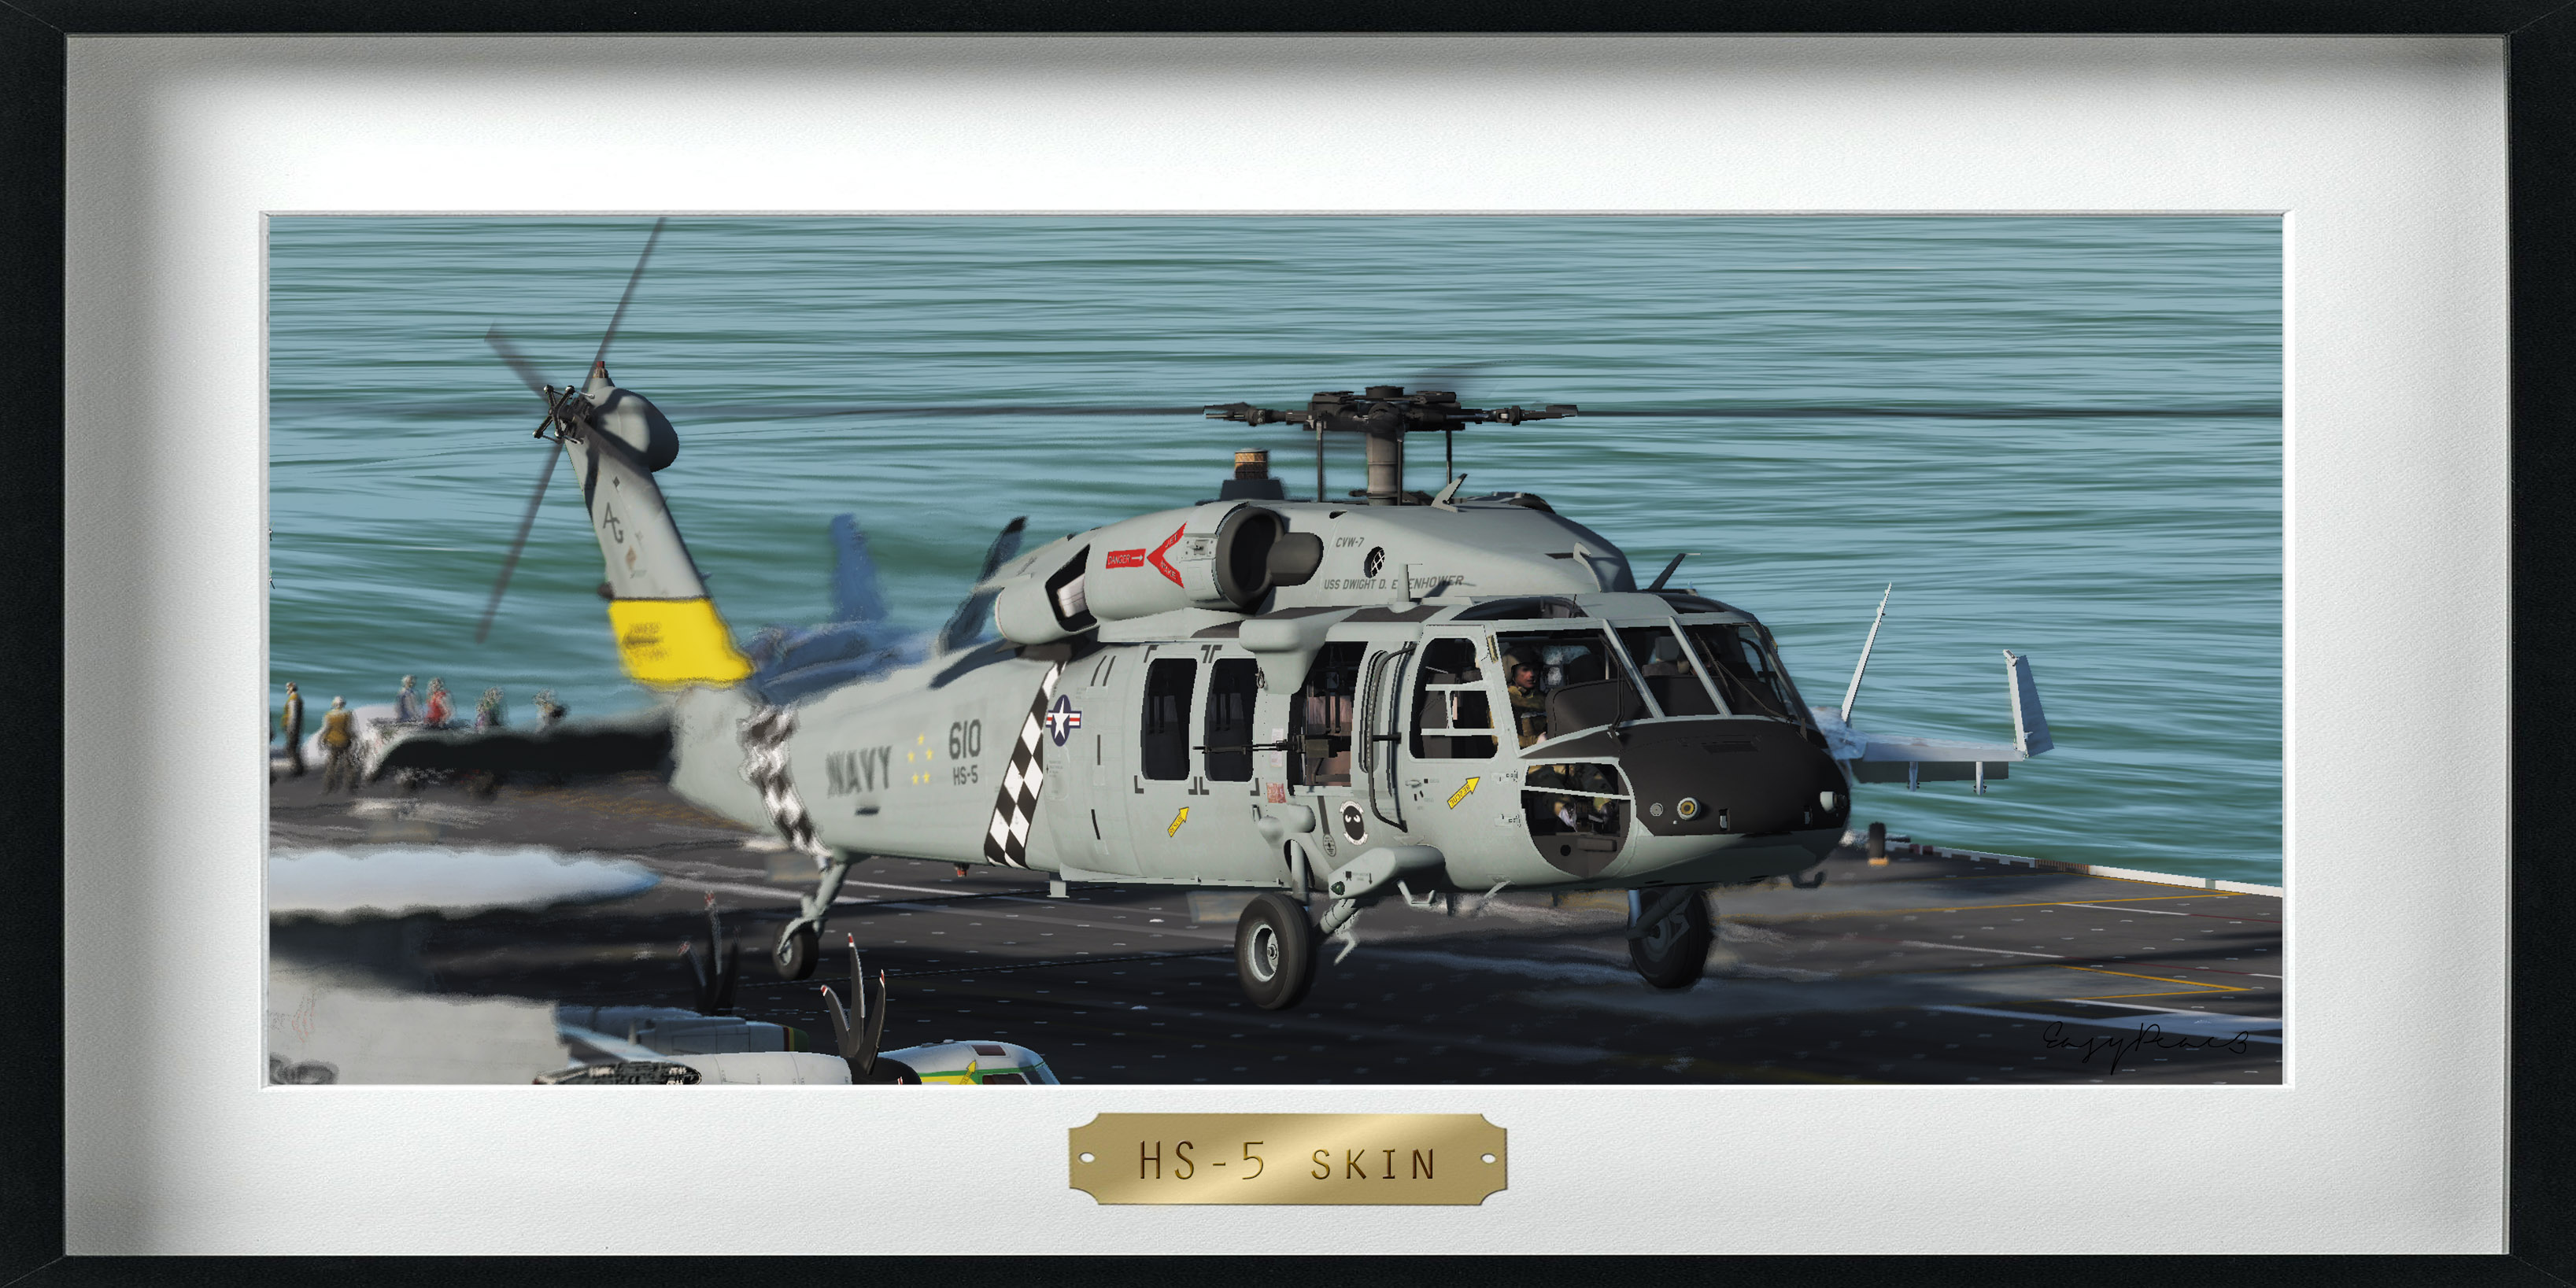 HS-5 Skin for UH-60